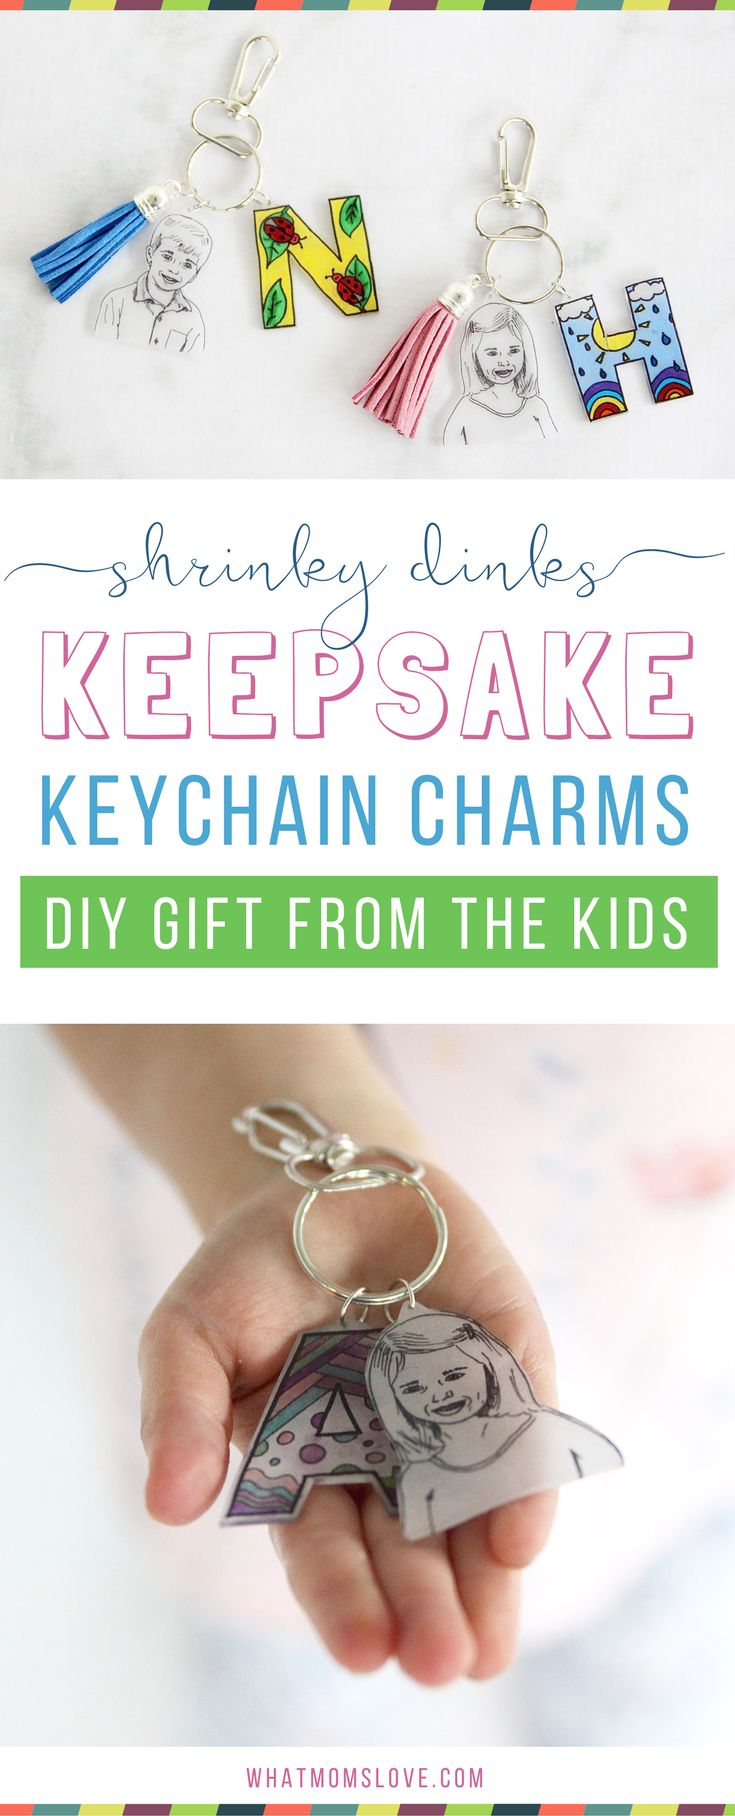 This easy to make Mother's Day or Father's Day gift from the kids is the perfect homemade keepsake to give to mom, dad, grandma or grandpa. Use Shrinky Dinks to create a DIY initial and headshot keychain - they're simple to make but totally unique. Anyone can make them, from toddlers to teens. Makes a great last minute gift from the kids or grandkids for Mother's Day, Father's Day, Grandparents Day, birthdays or Christmas!